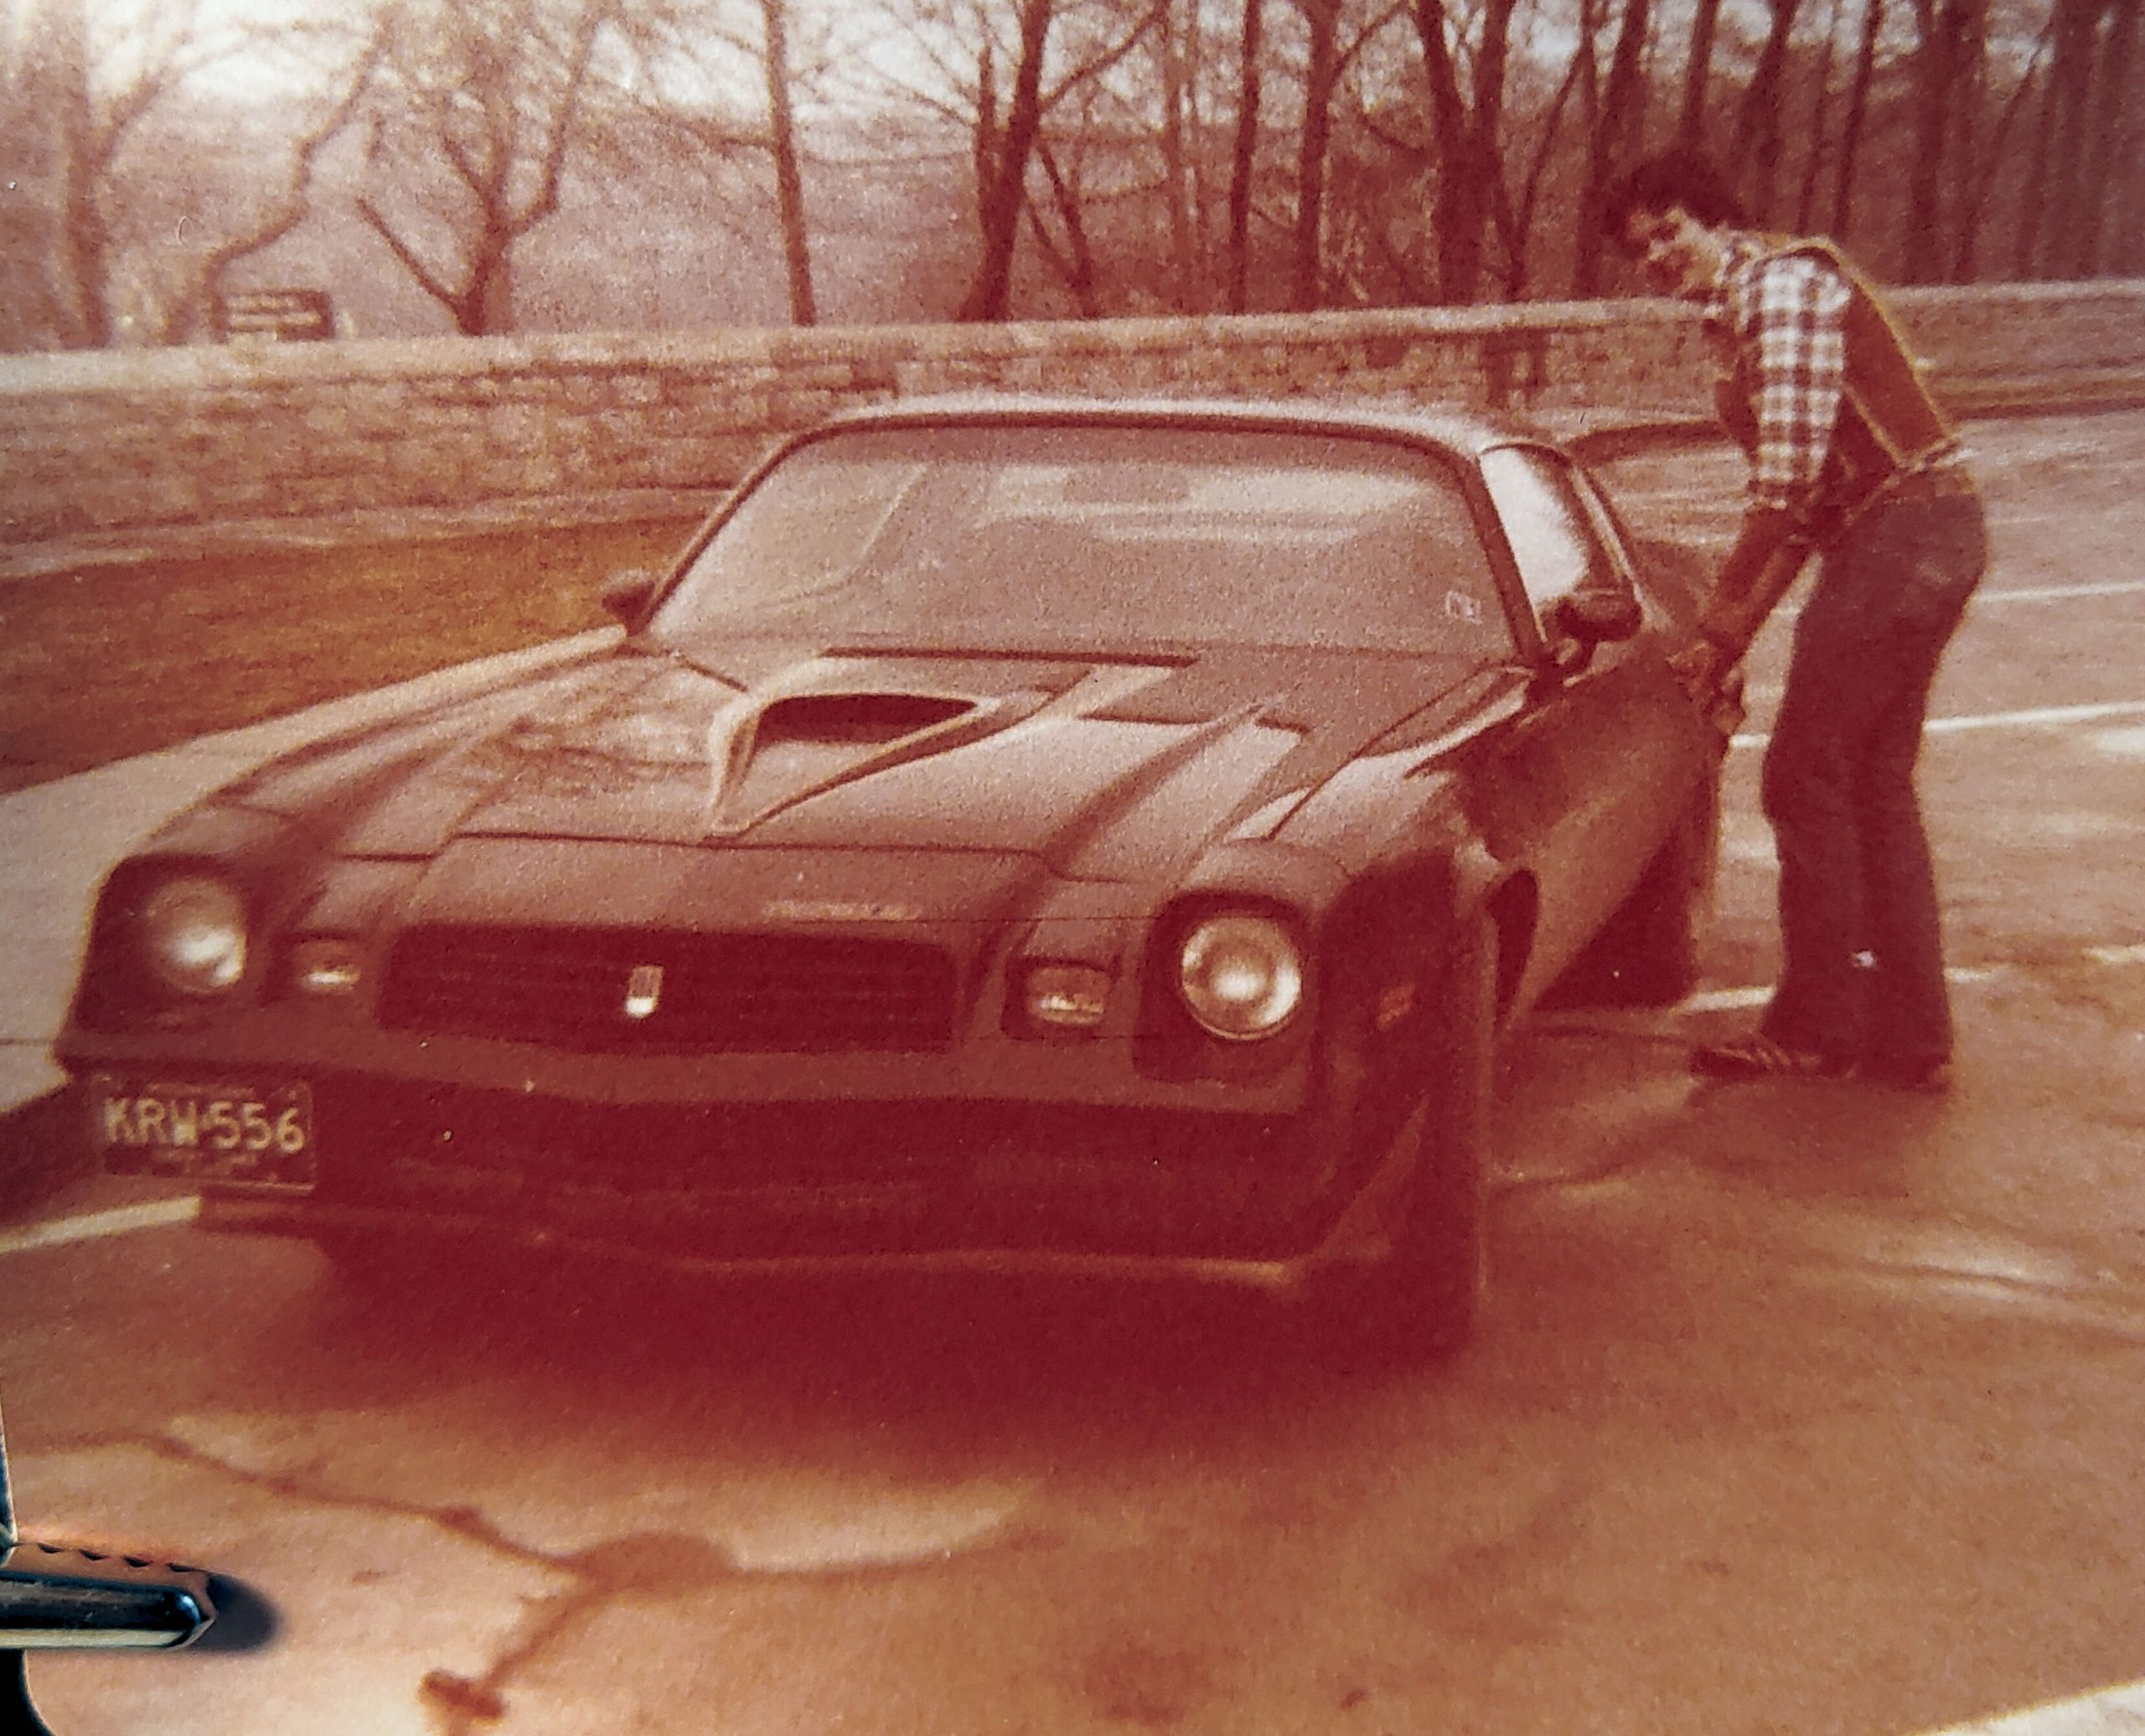 Obsession: A Z28 Love Story